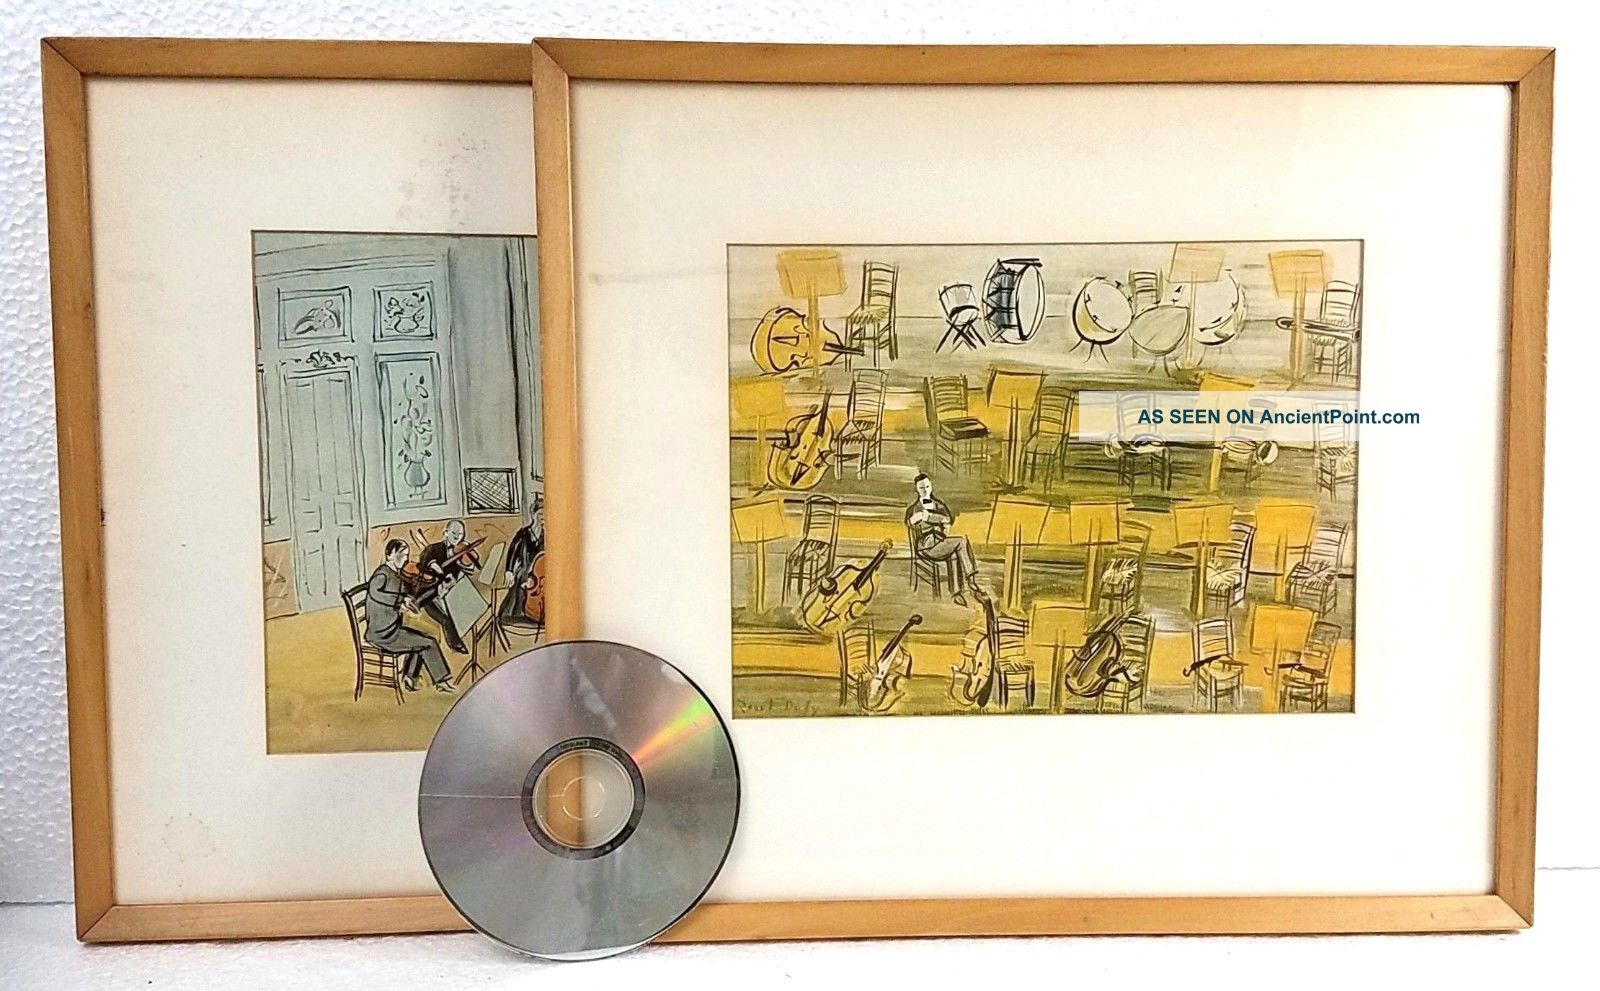 2 Vintage Raoul Dufy Chamber And Full Orchestra Prints Framed 1950s Mid Century Mid-Century Modernism photo